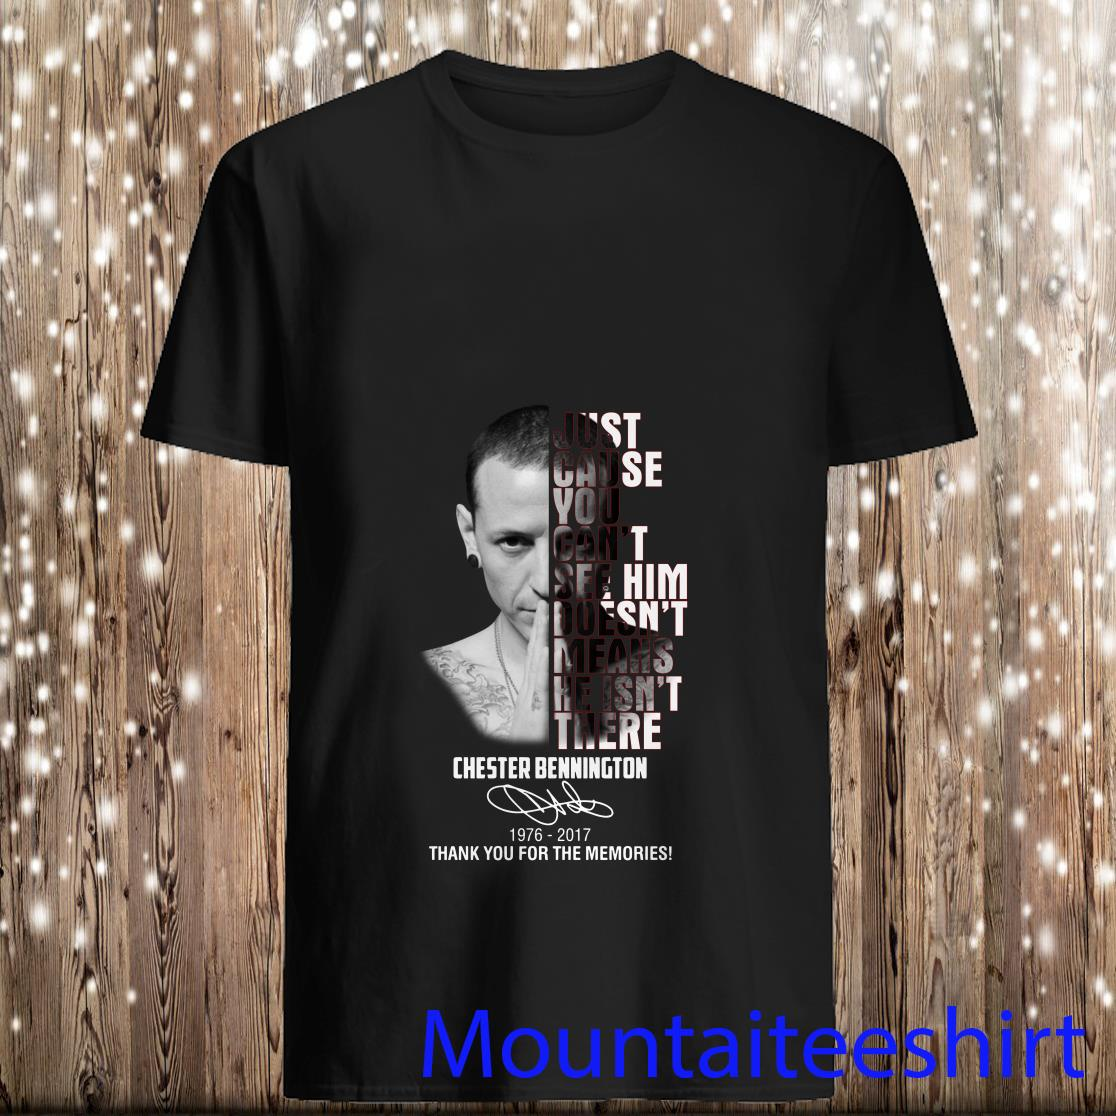 Chester Bennington Just cause can_t see him doesn_t means he isn_t there 1976-2017 Shirt